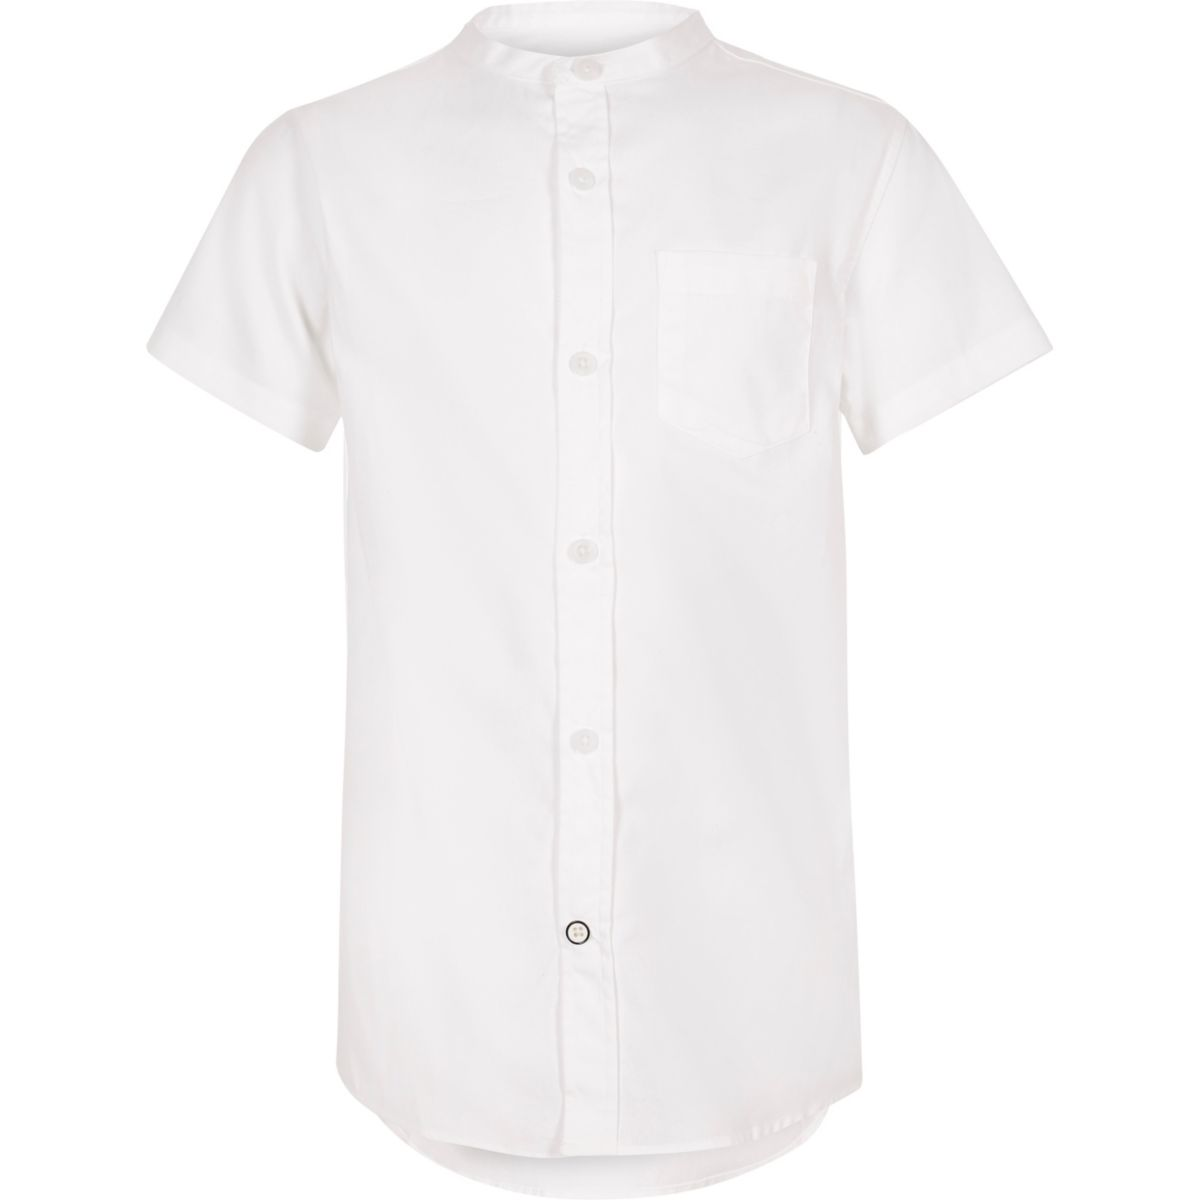 Boys white short sleeve grandad shirt occasionwear for Short sleeve grandad shirt